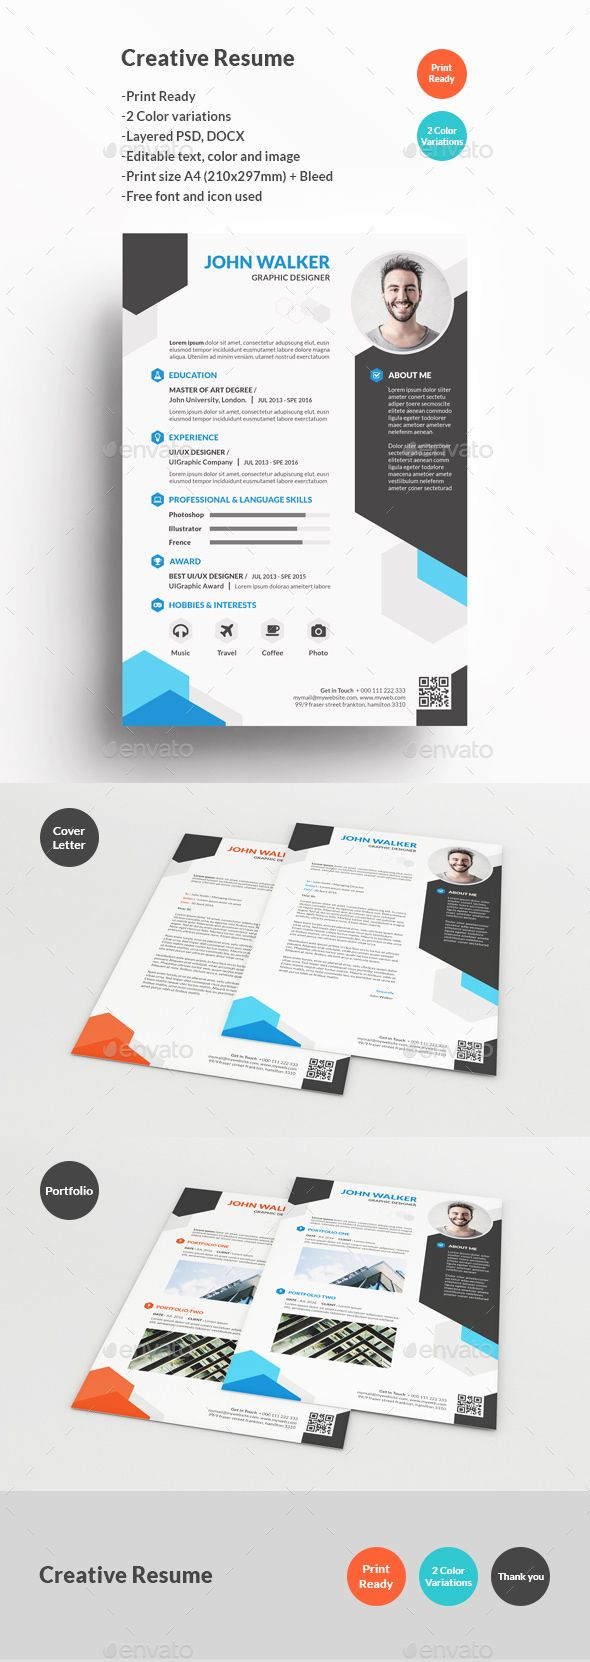 Creative Resume Template PSD, DOCX                                                                                                                                                                                 More